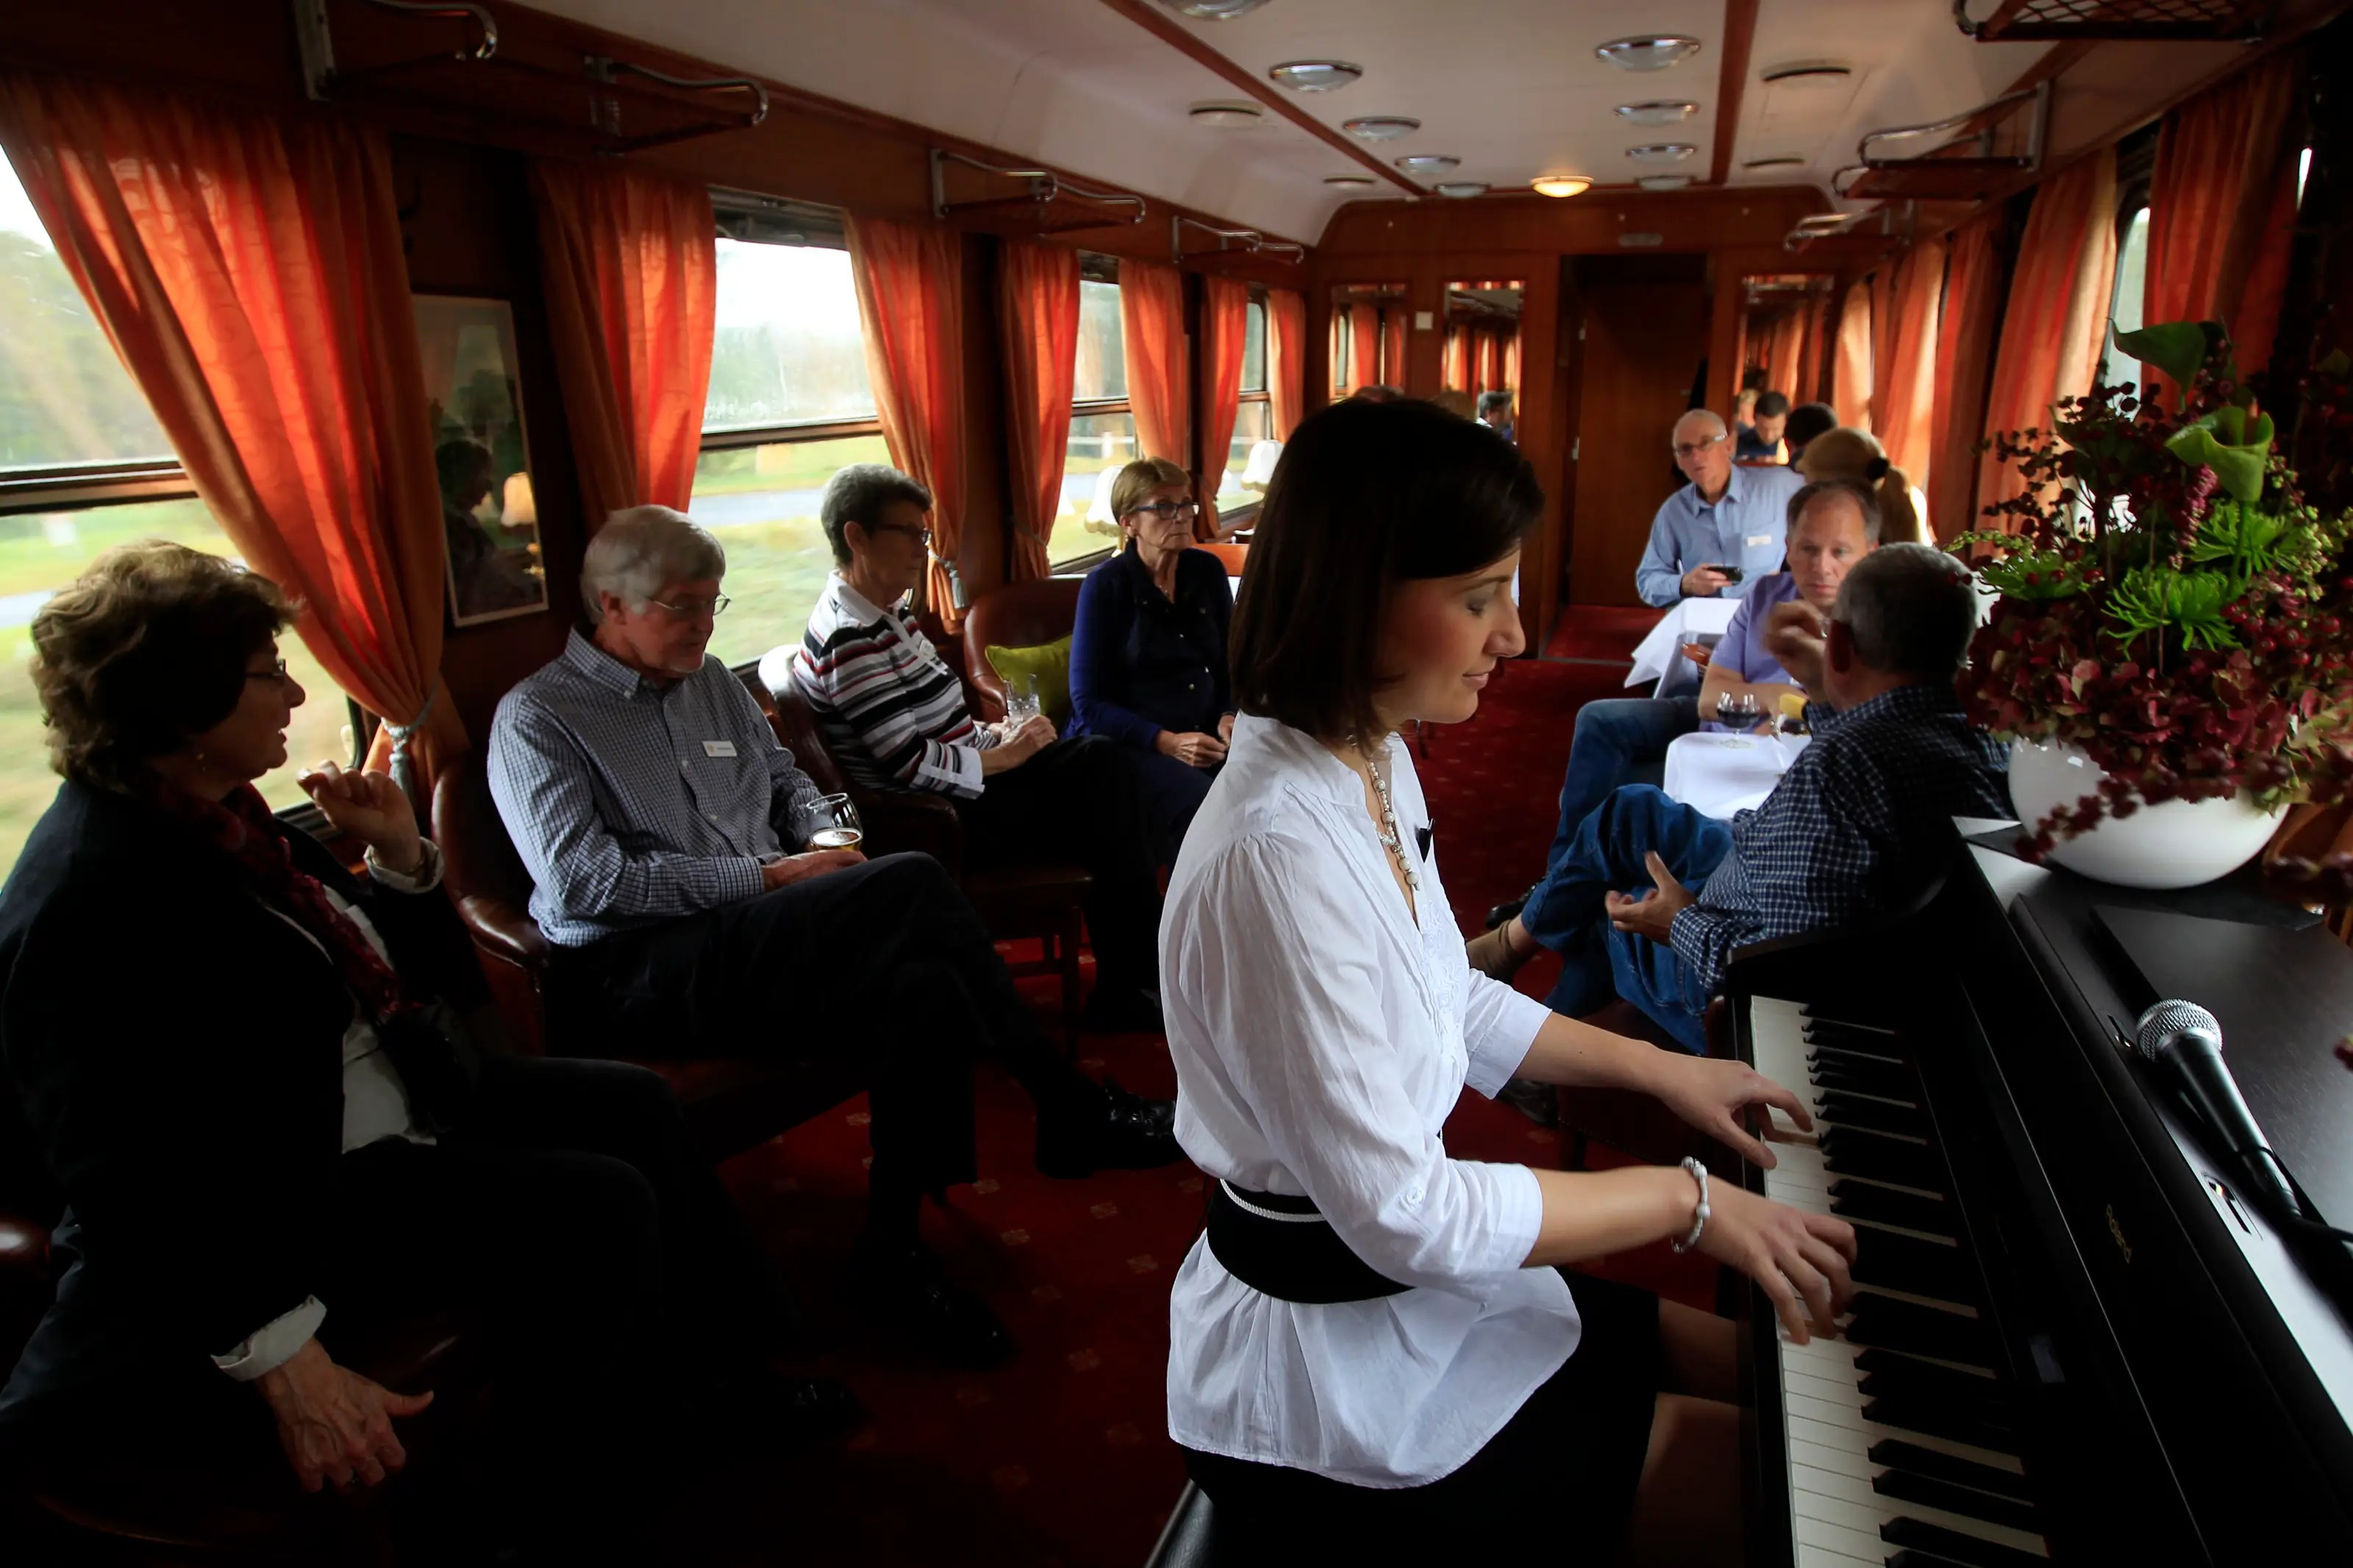 The piano bar is where passengers can enjoy the vintage atmosphere over a drink while listening to music.